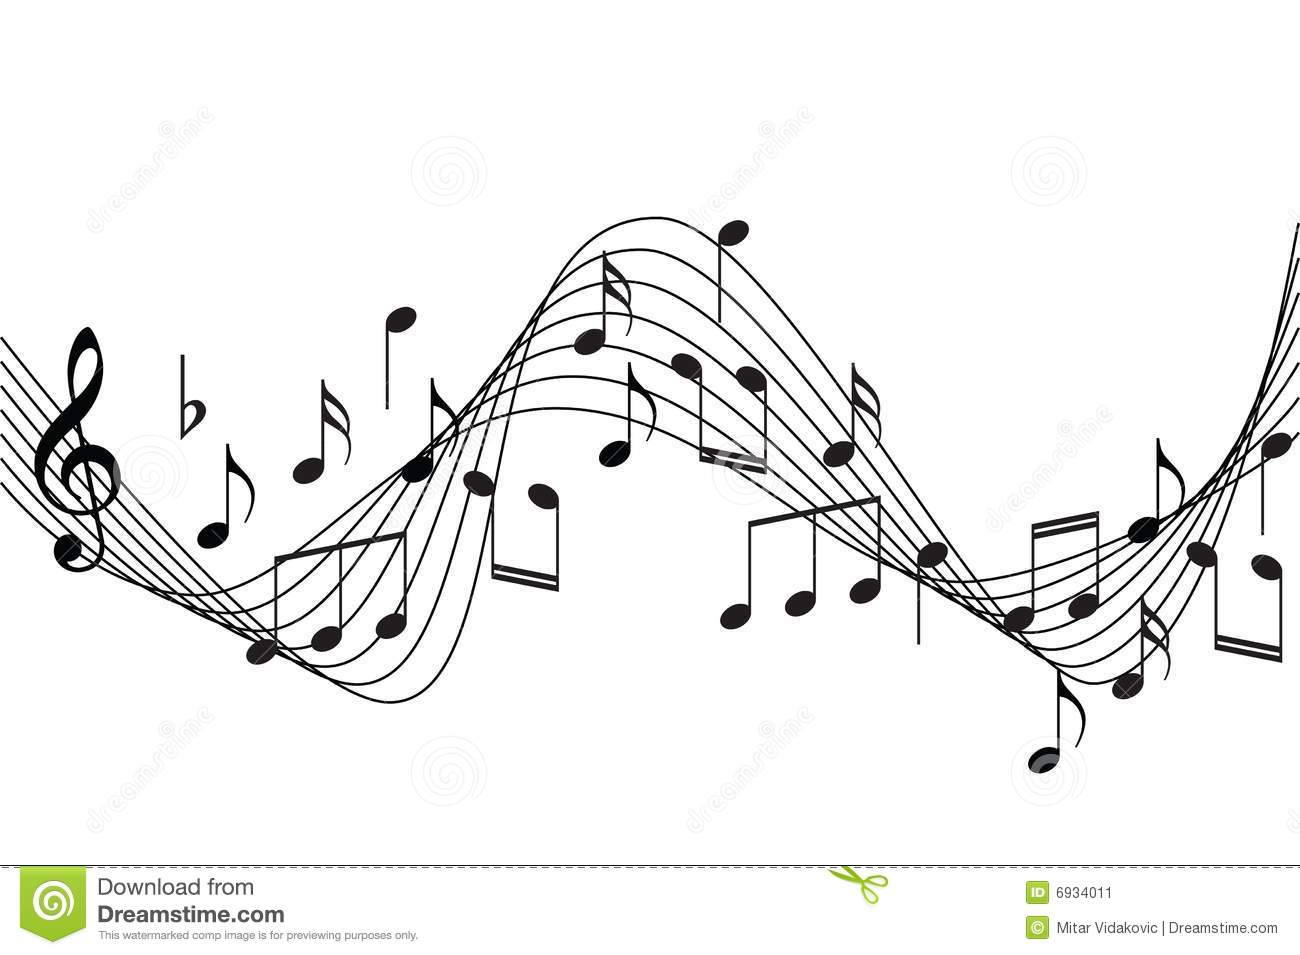 Music Notes Backgrounds: Music Score Transparent Clipart